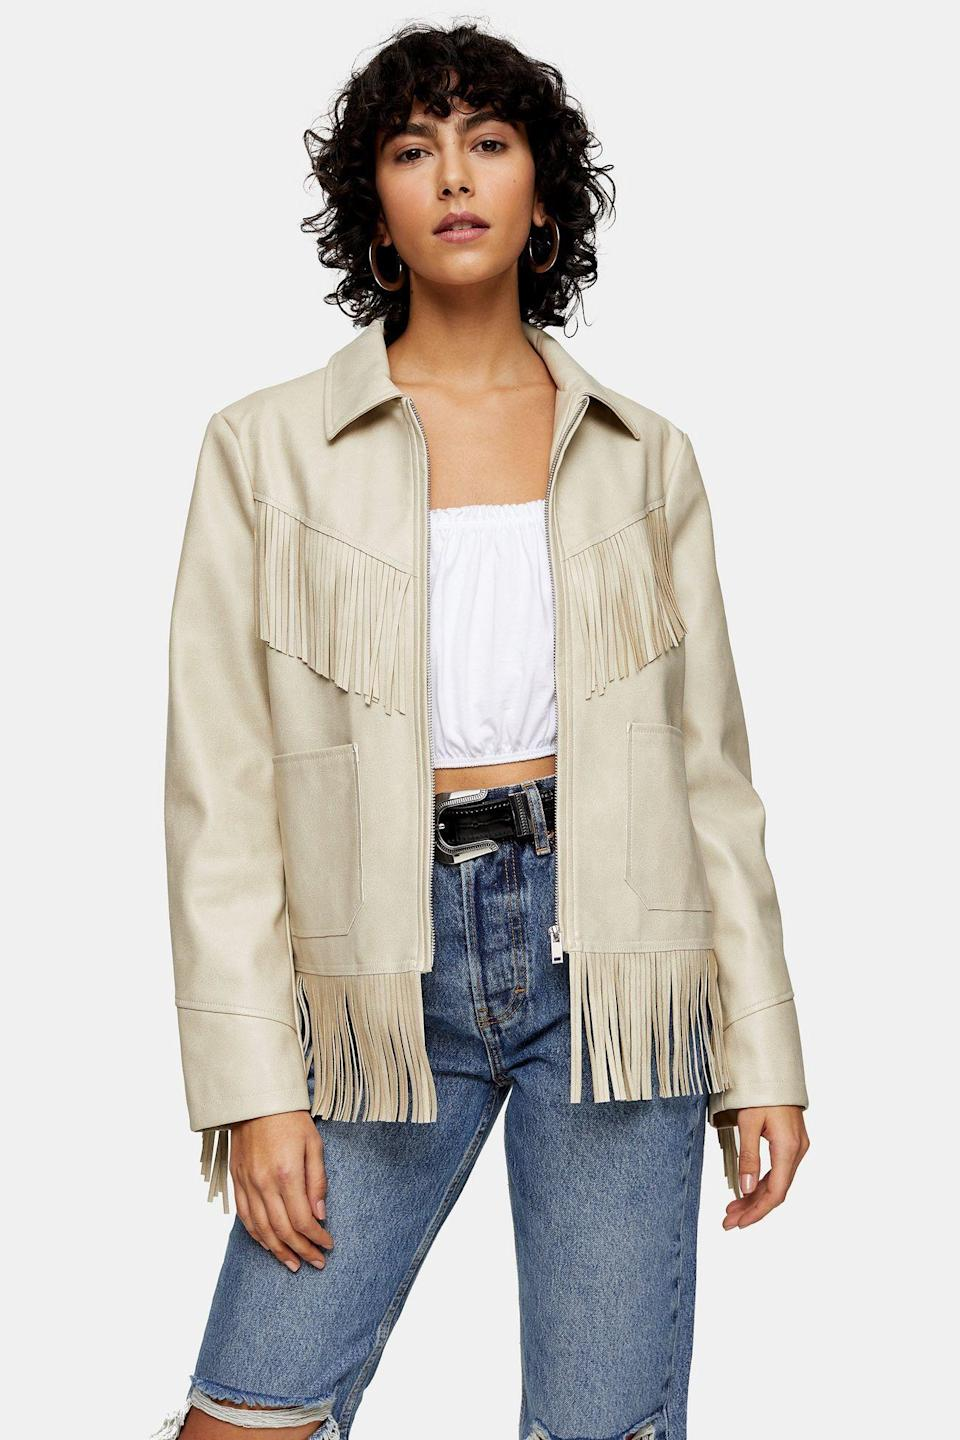 """<p><strong>Topshop</strong></p><p>topshop.com</p><p><strong>$110.00</strong></p><p><a href=""""https://go.redirectingat.com?id=74968X1596630&url=https%3A%2F%2Fus.topshop.com%2Fen%2Ftsus%2Fproduct%2Fecru-faux-leather-fringe-jacket-9772410&sref=https%3A%2F%2Fwww.cosmopolitan.com%2Fstyle-beauty%2Ffashion%2Fg30933395%2Ffall-fashion-trends-2020%2F"""" rel=""""nofollow noopener"""" target=""""_blank"""" data-ylk=""""slk:Shop Now"""" class=""""link rapid-noclick-resp"""">Shop Now</a></p><p>It really doesn't matter what else you're wearing when you have a fringe jacket like this one.</p>"""